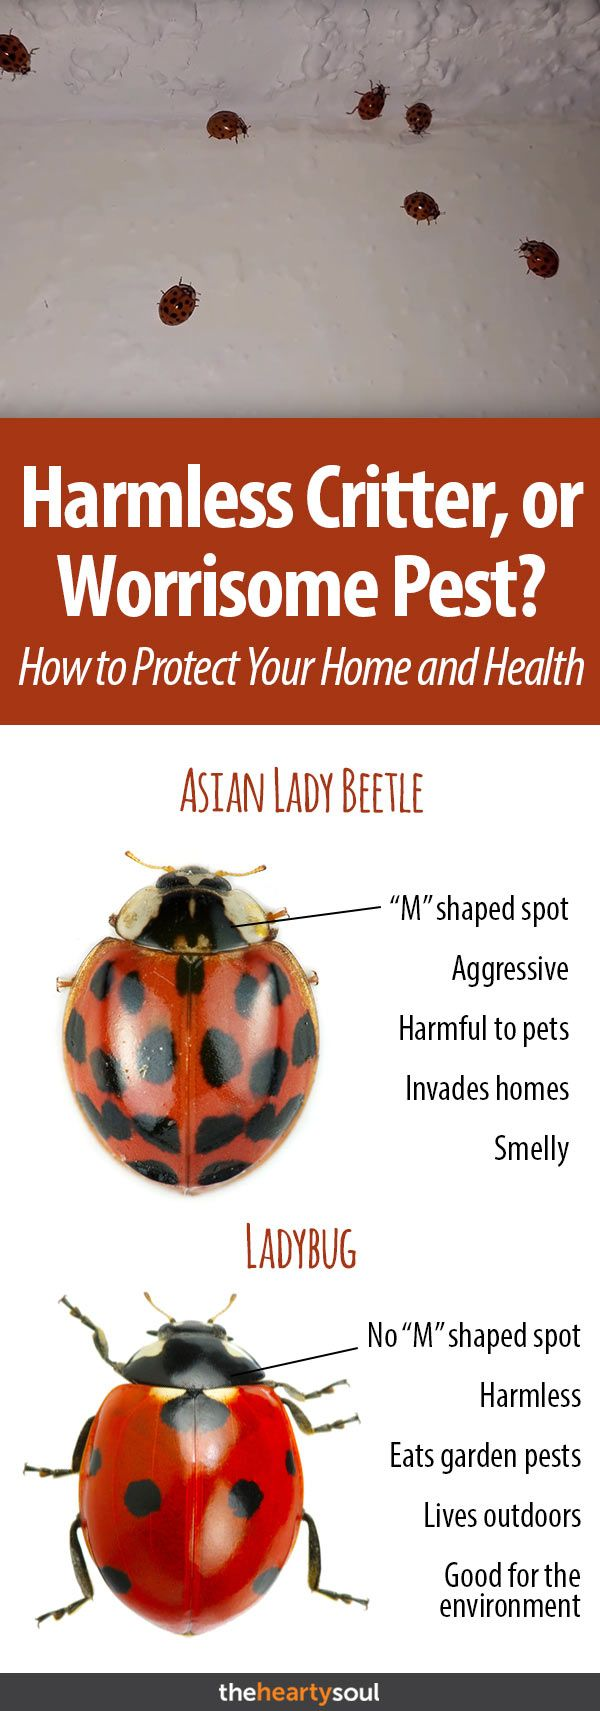 Asian Lady Beetles Where They Came From And How To Get Rid Of Them Lady Beetle Asian Beetle Asian Ladybugs